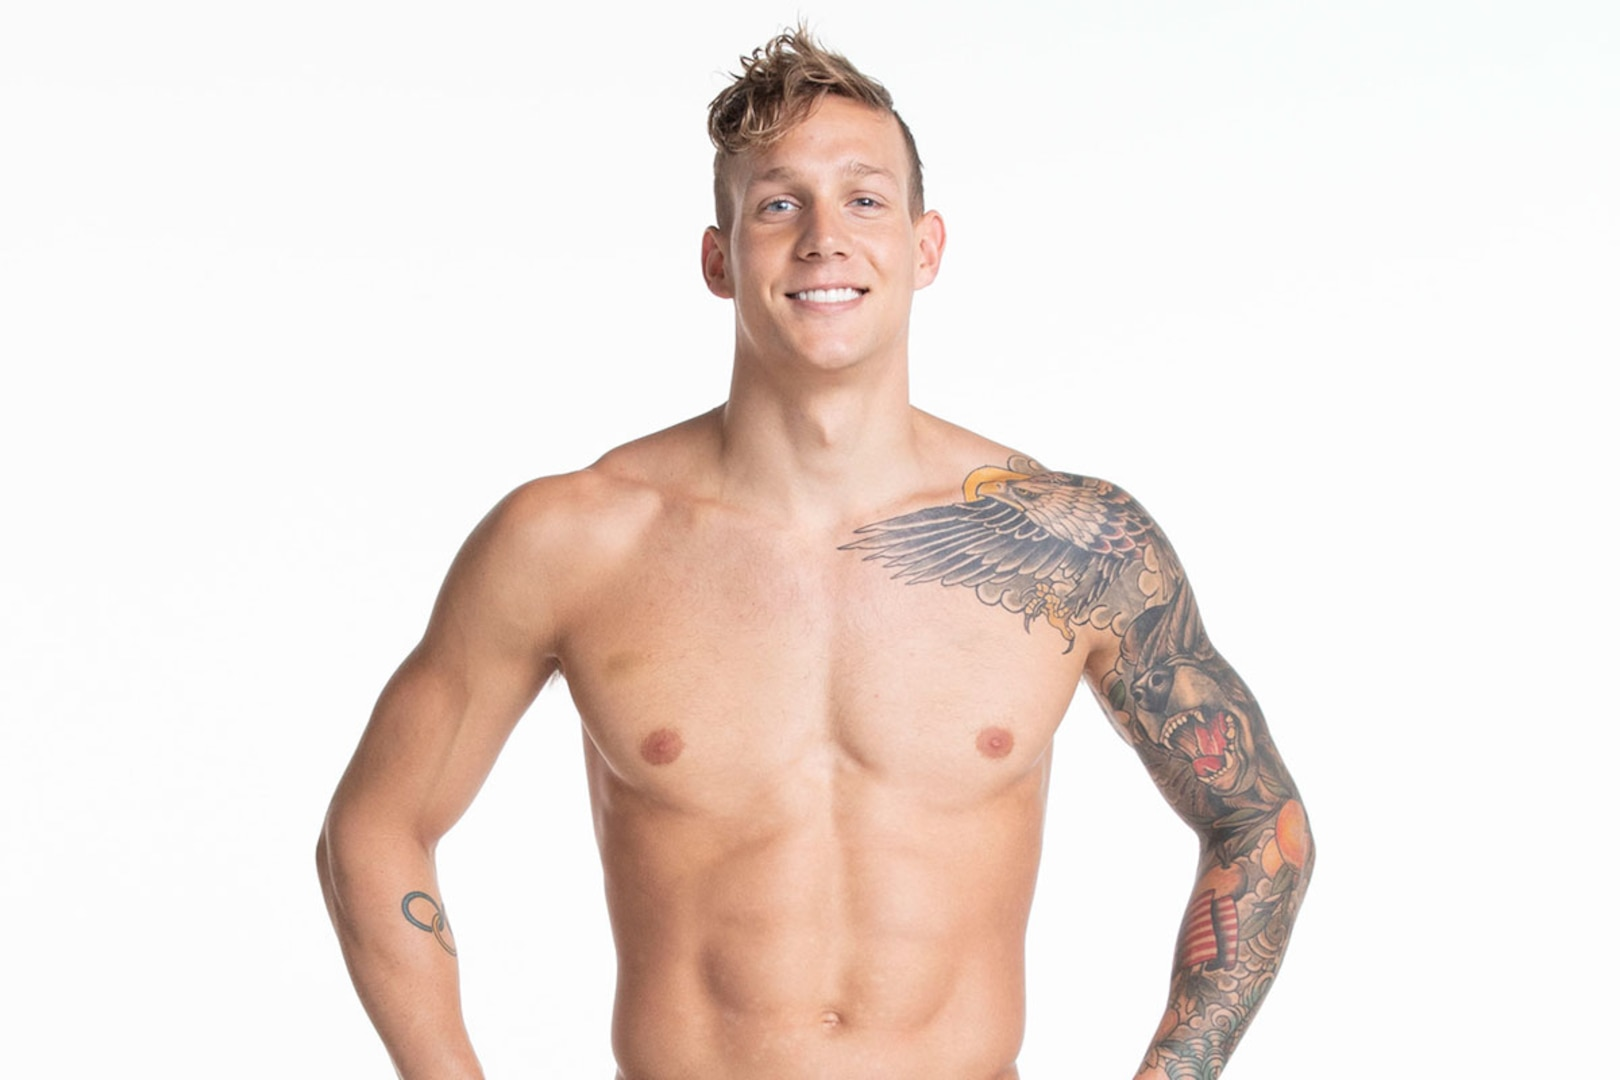 Caeleb Dressel shows off the tattoo sleeve on his arm